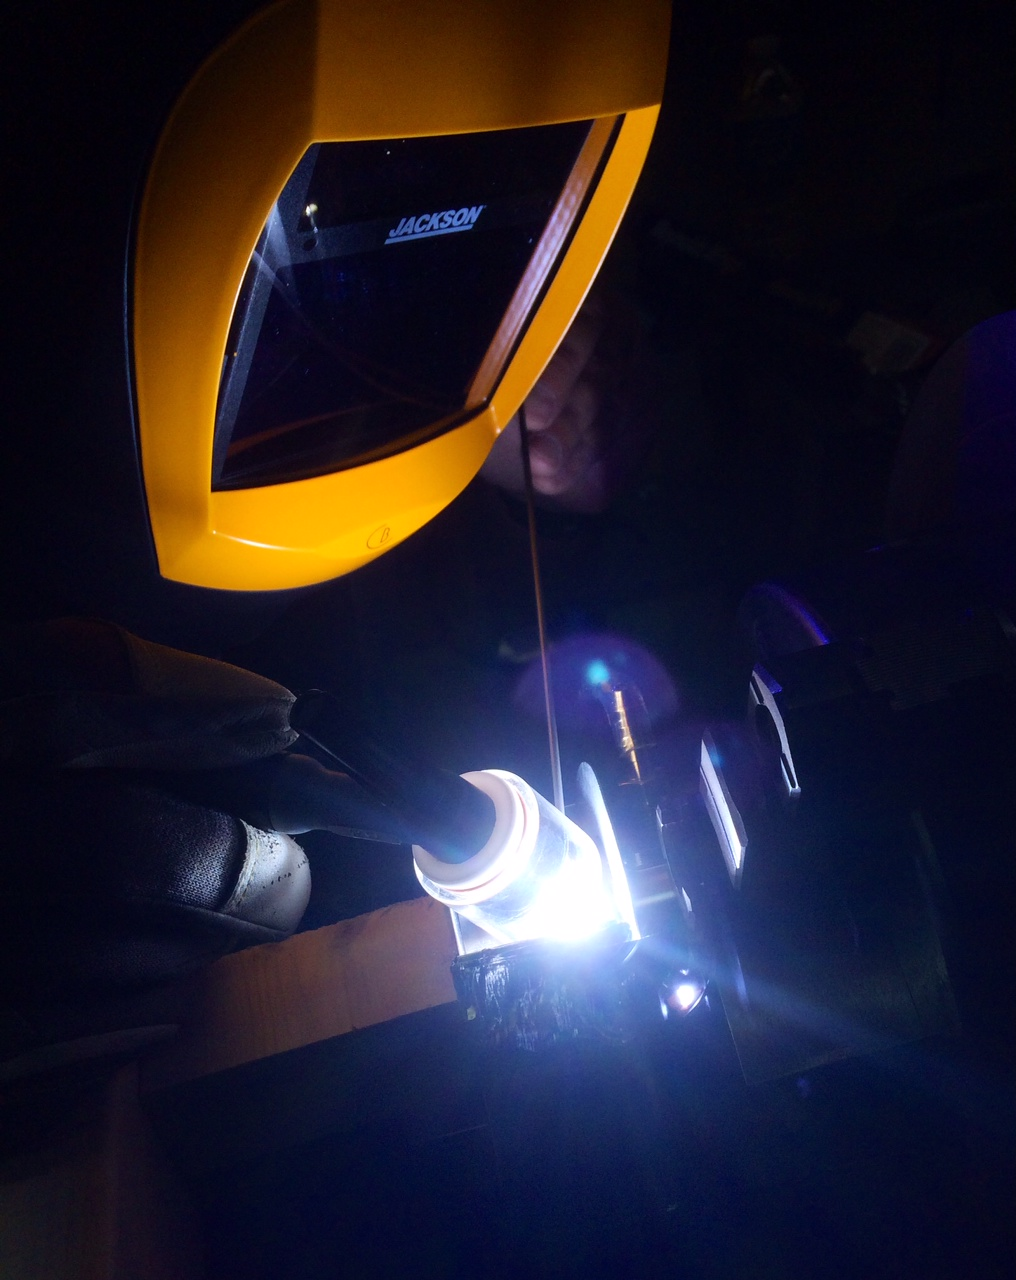 Titanium welding for NASA's Venus Atmosphere Project 3